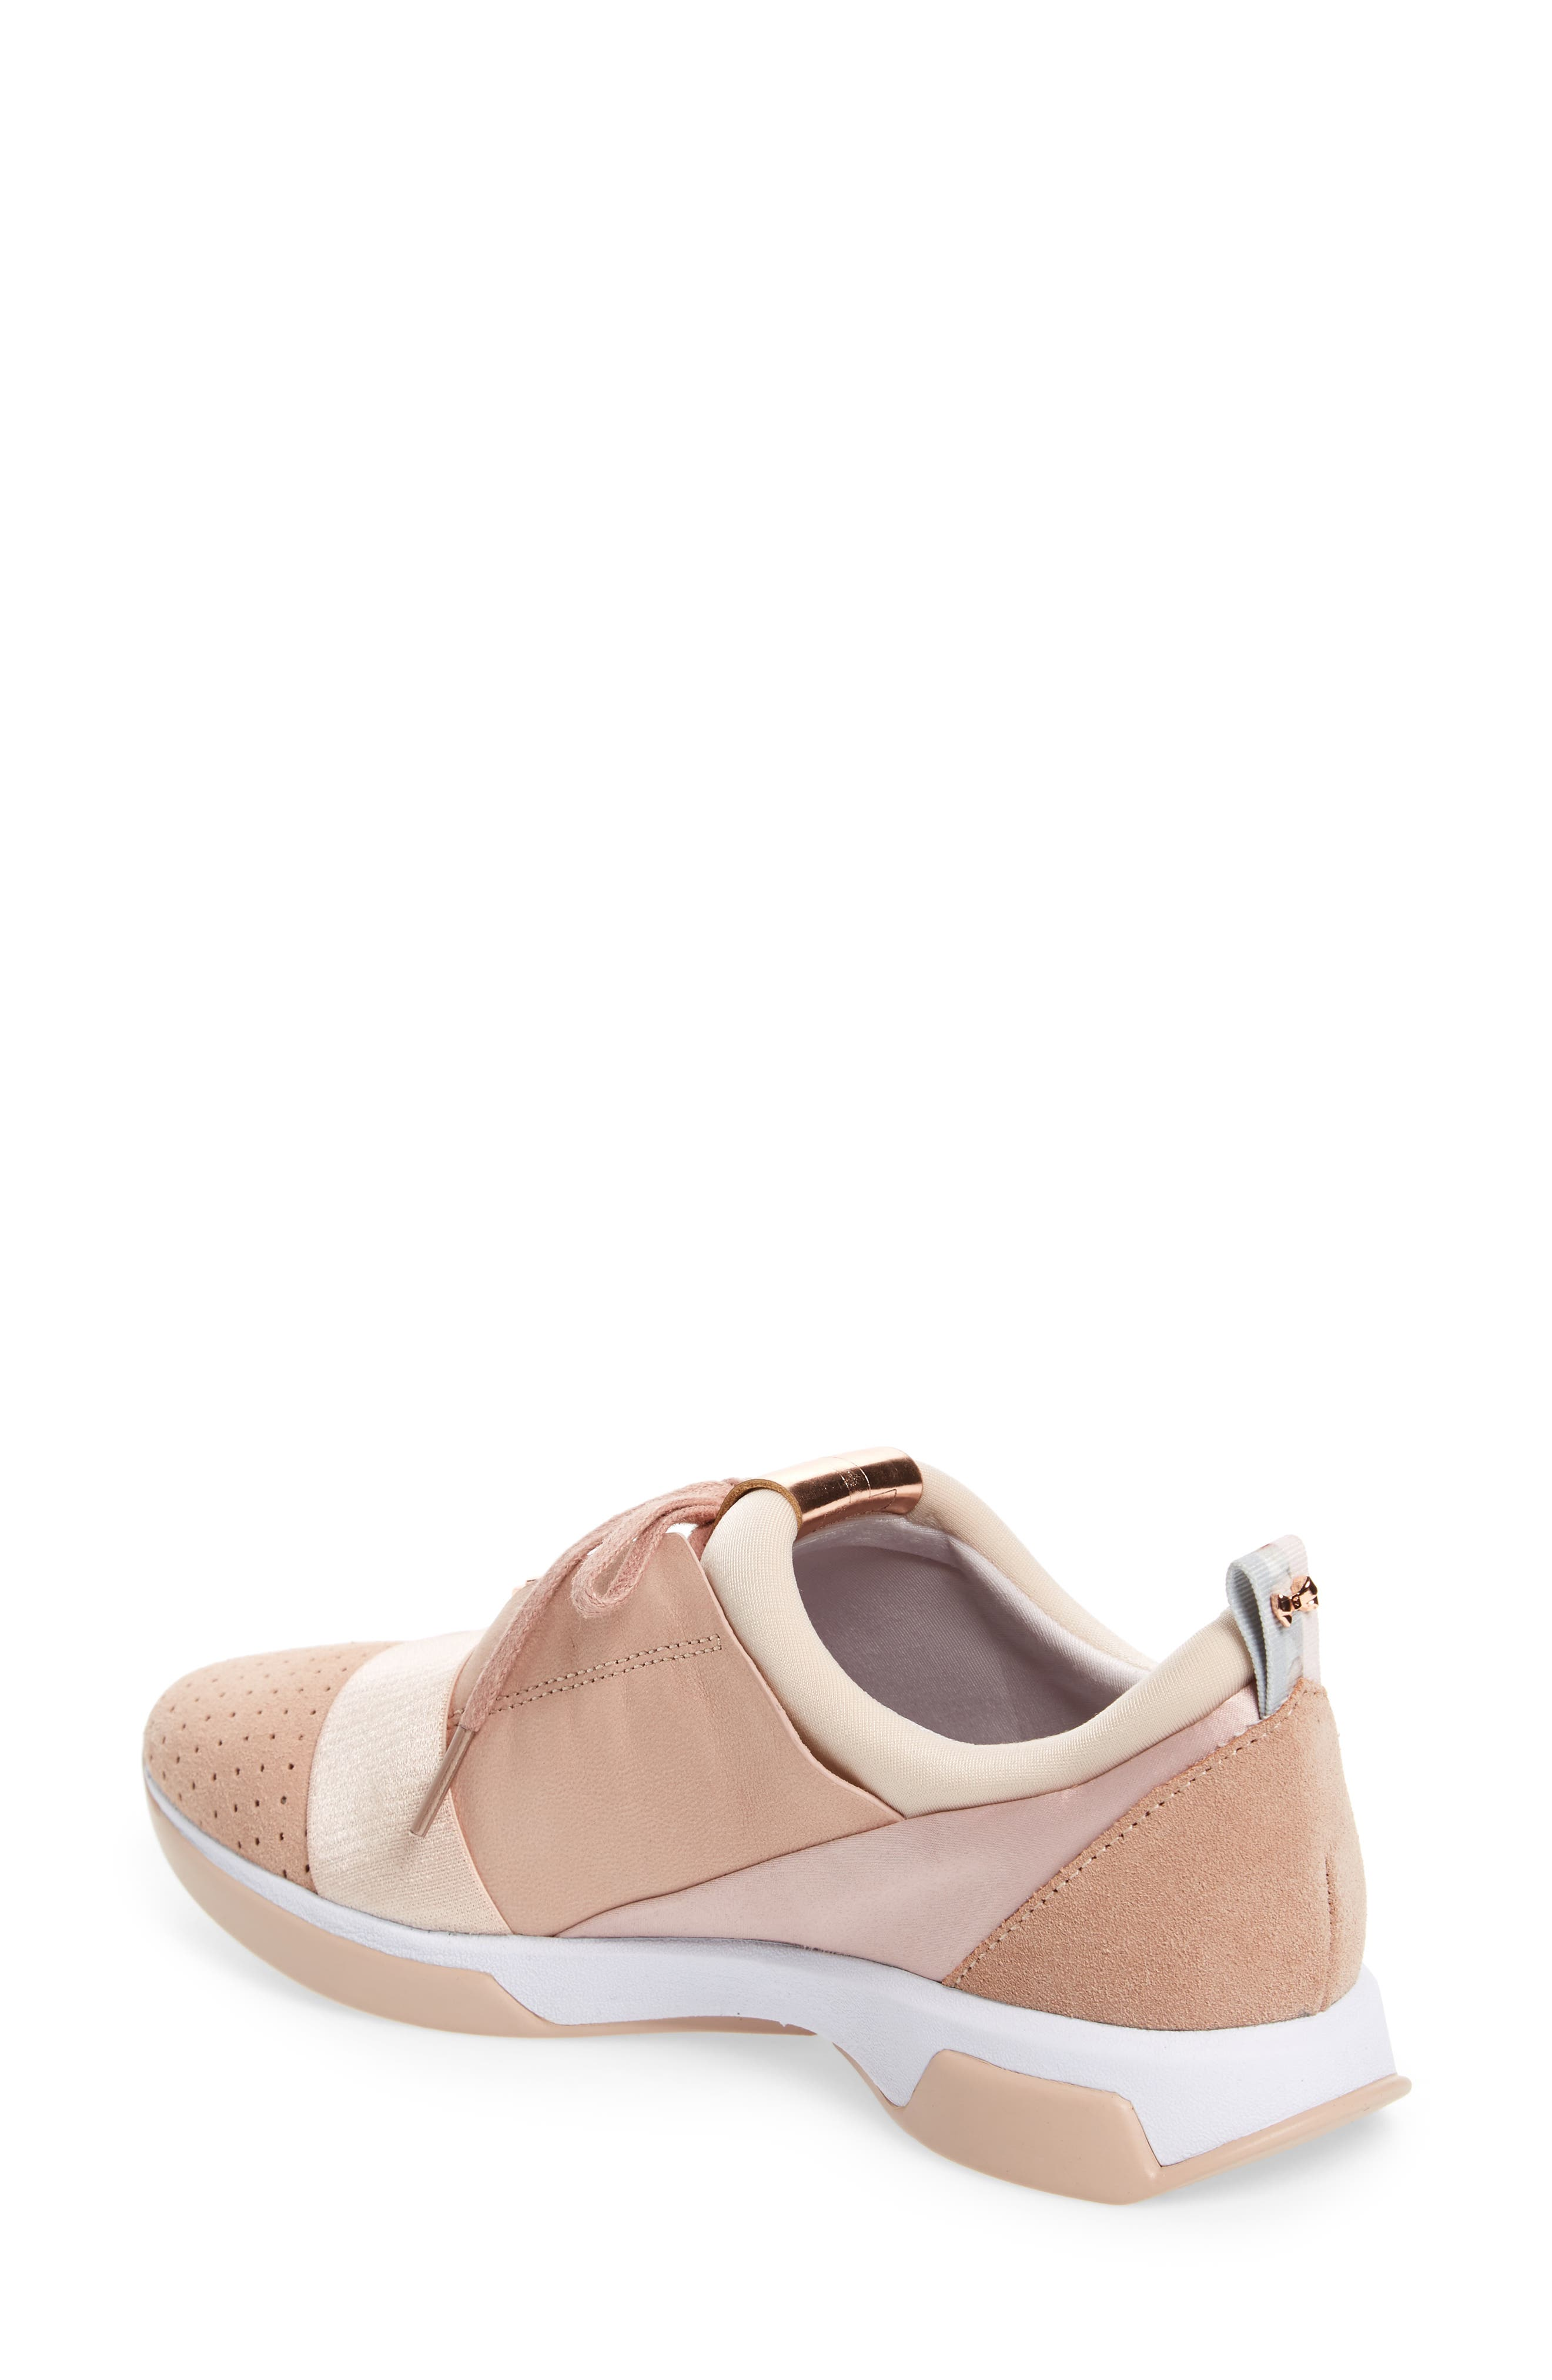 Cepa Sneaker,                             Alternate thumbnail 2, color,                             Light Pink